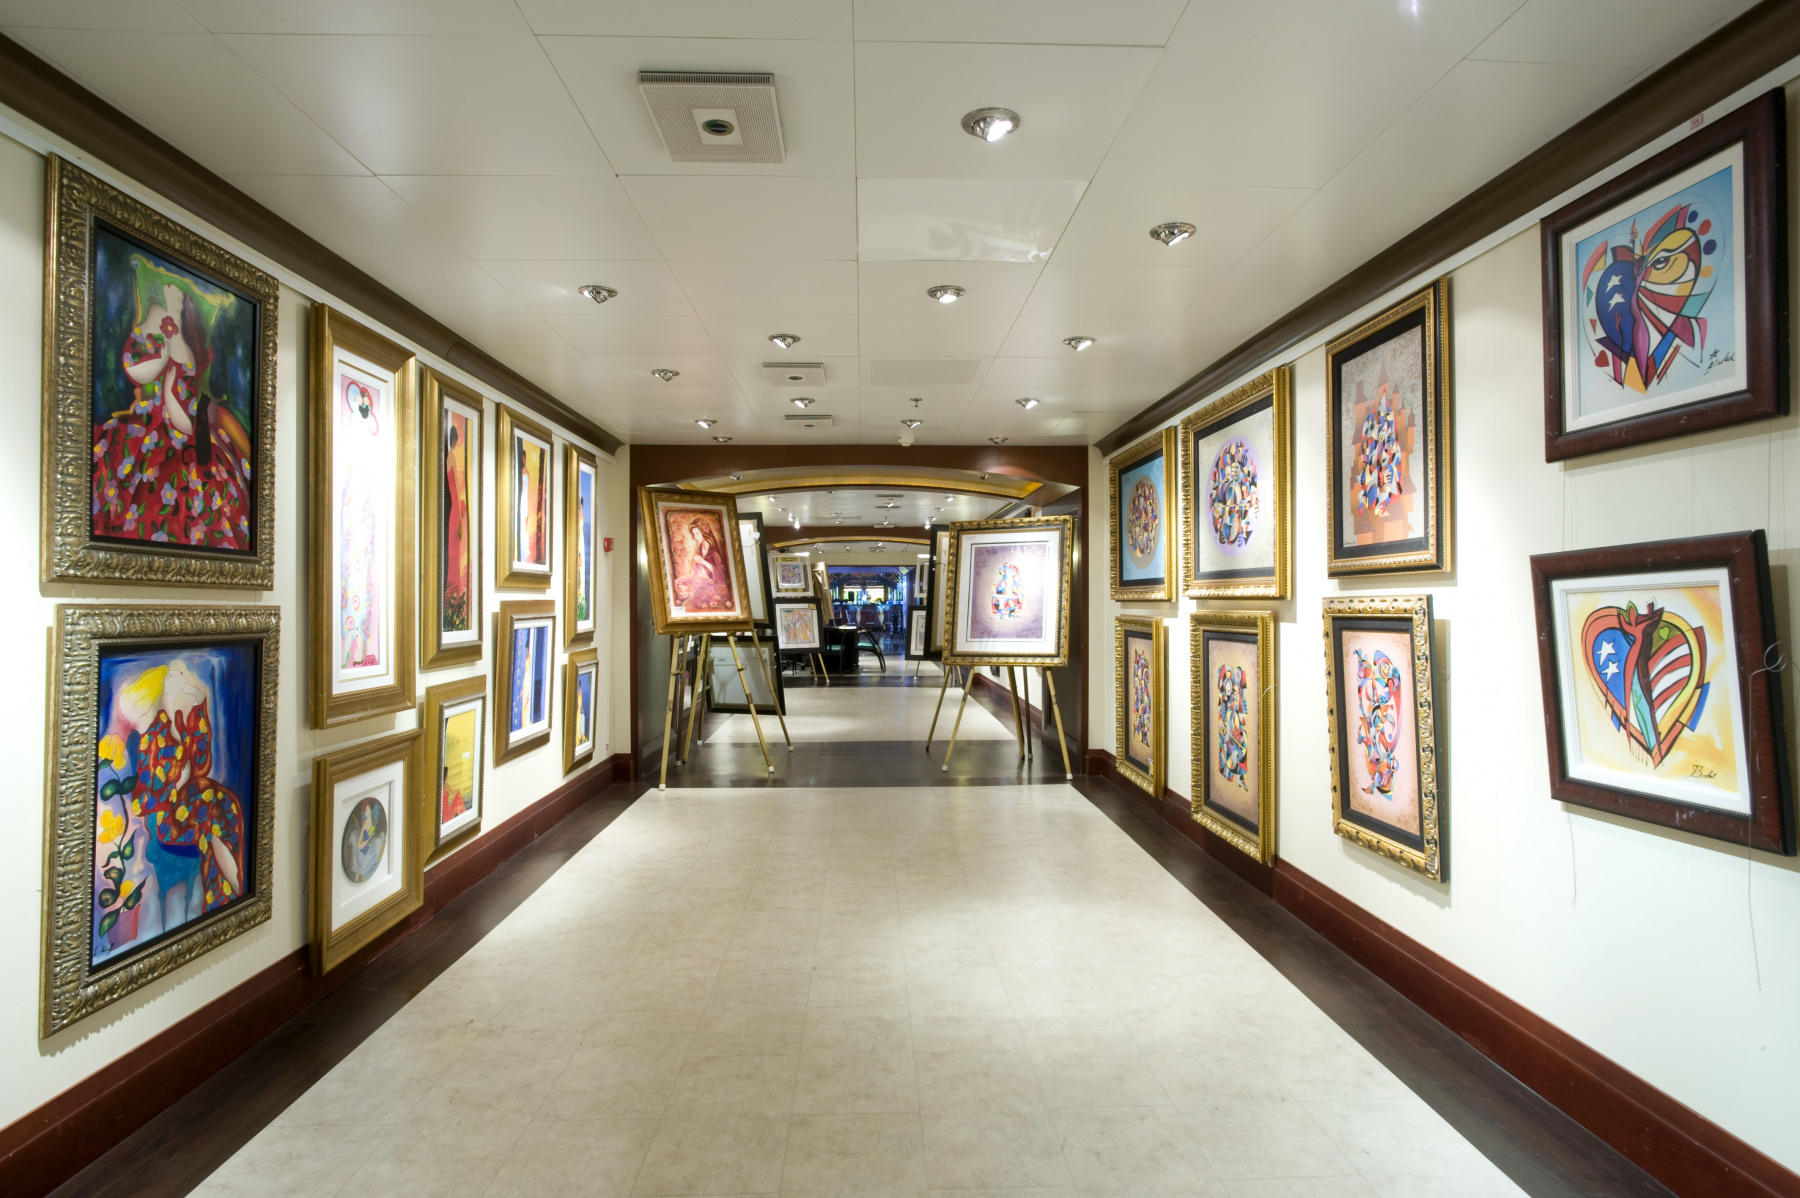 Carnival Fascination Art Gallery 1.jpg